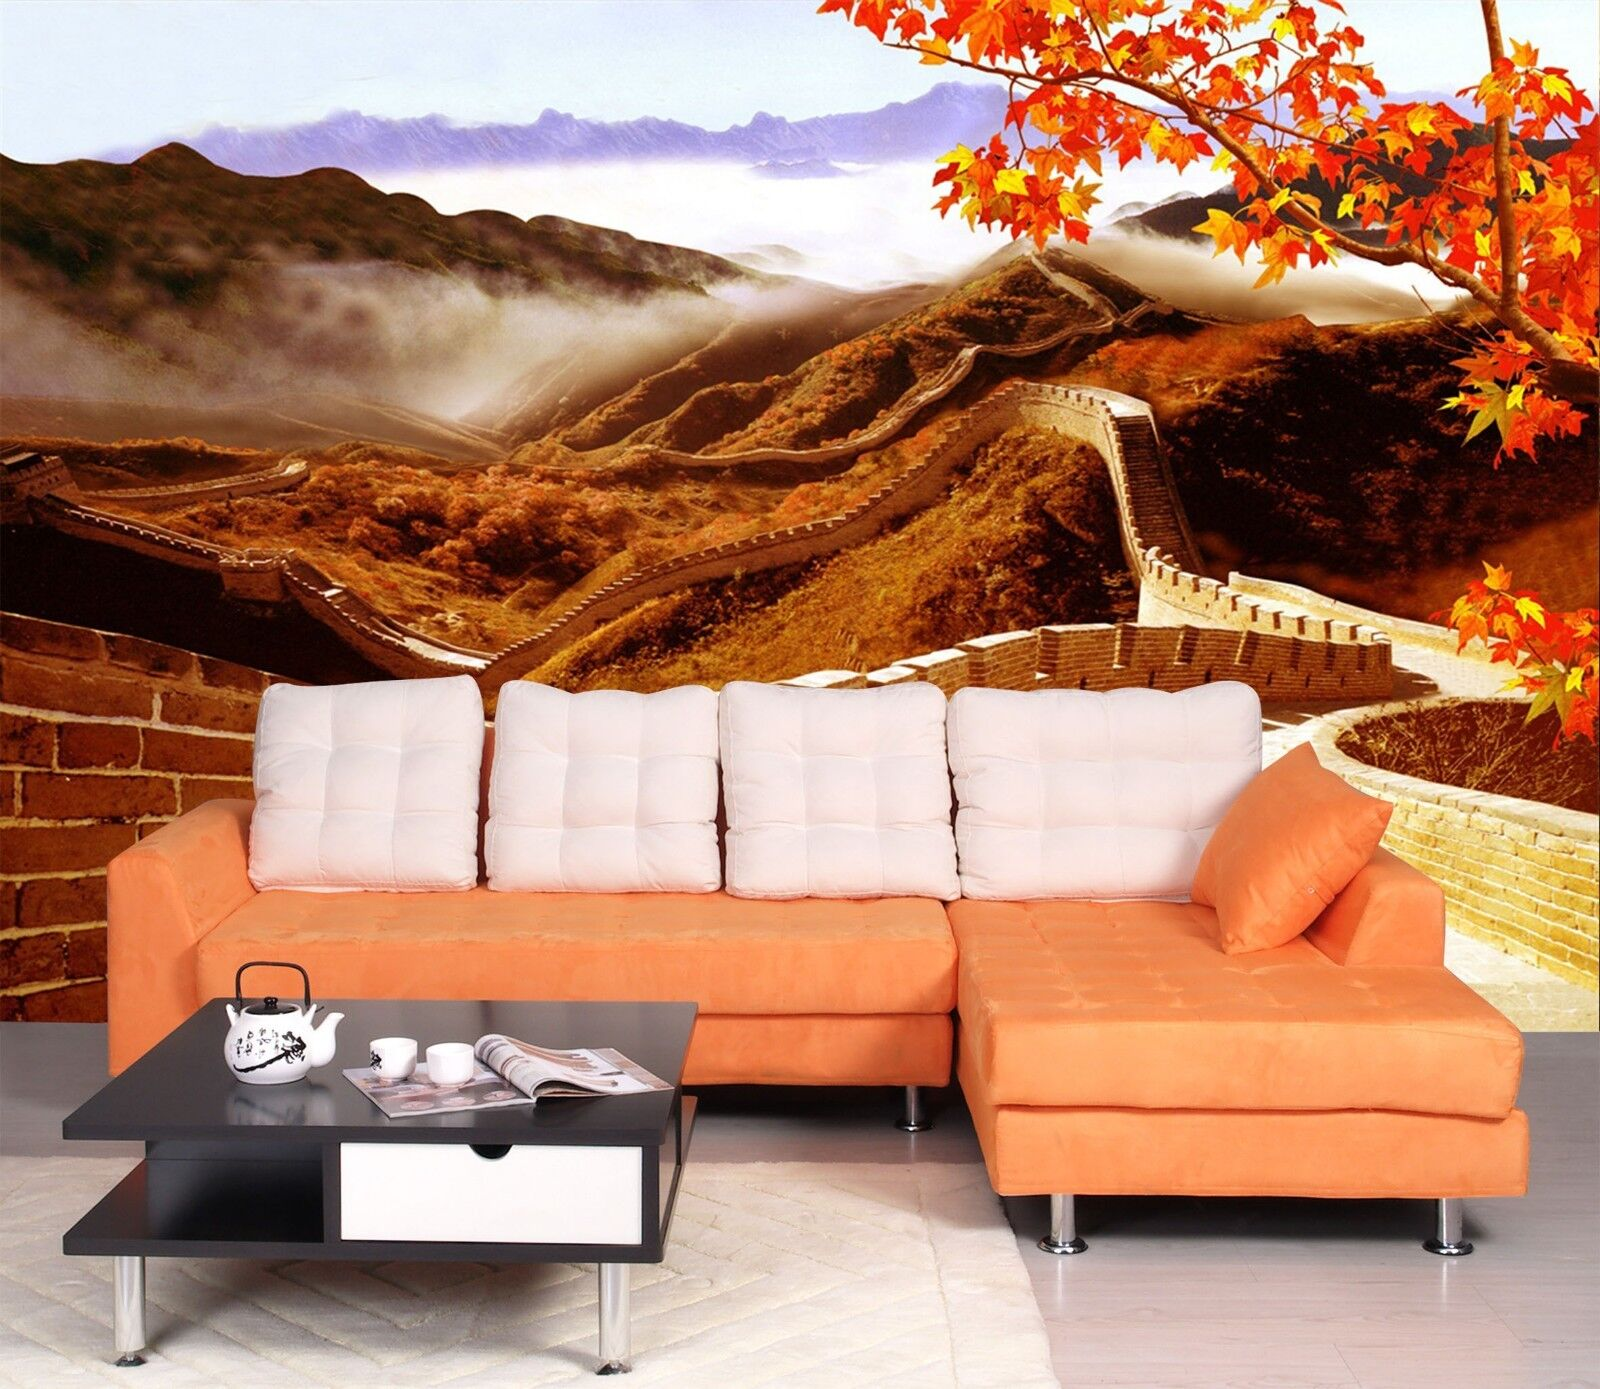 3D Great Wall 7055 Wallpaper Mural Wall Print Wall Wallpaper Murals US Lemon